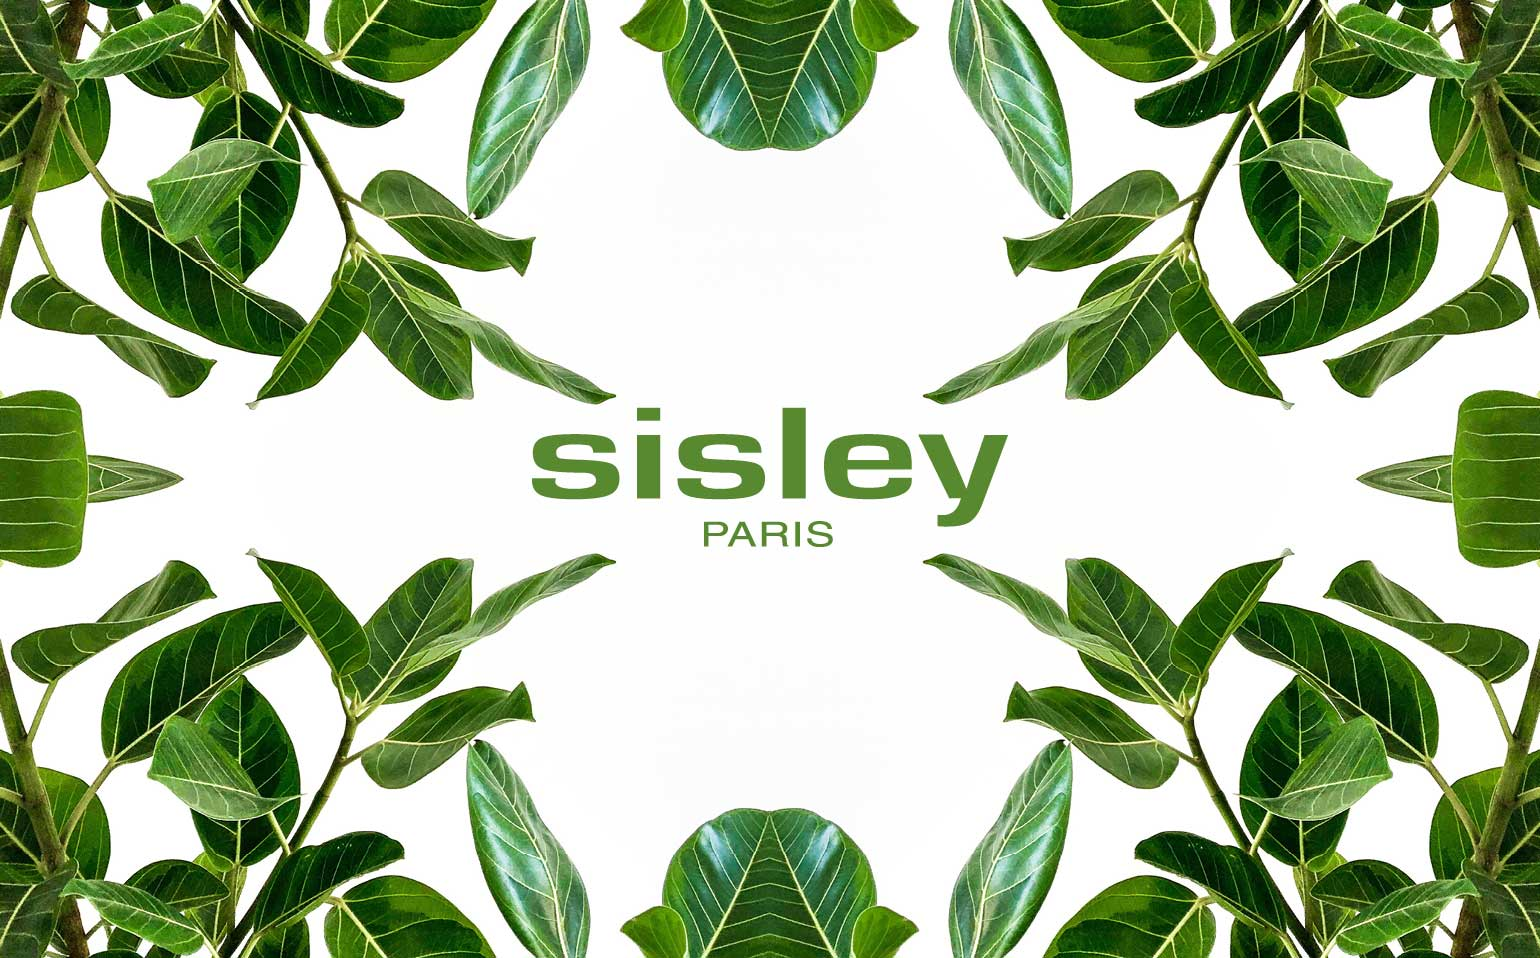 Your complimentary gift from Sisley Paris